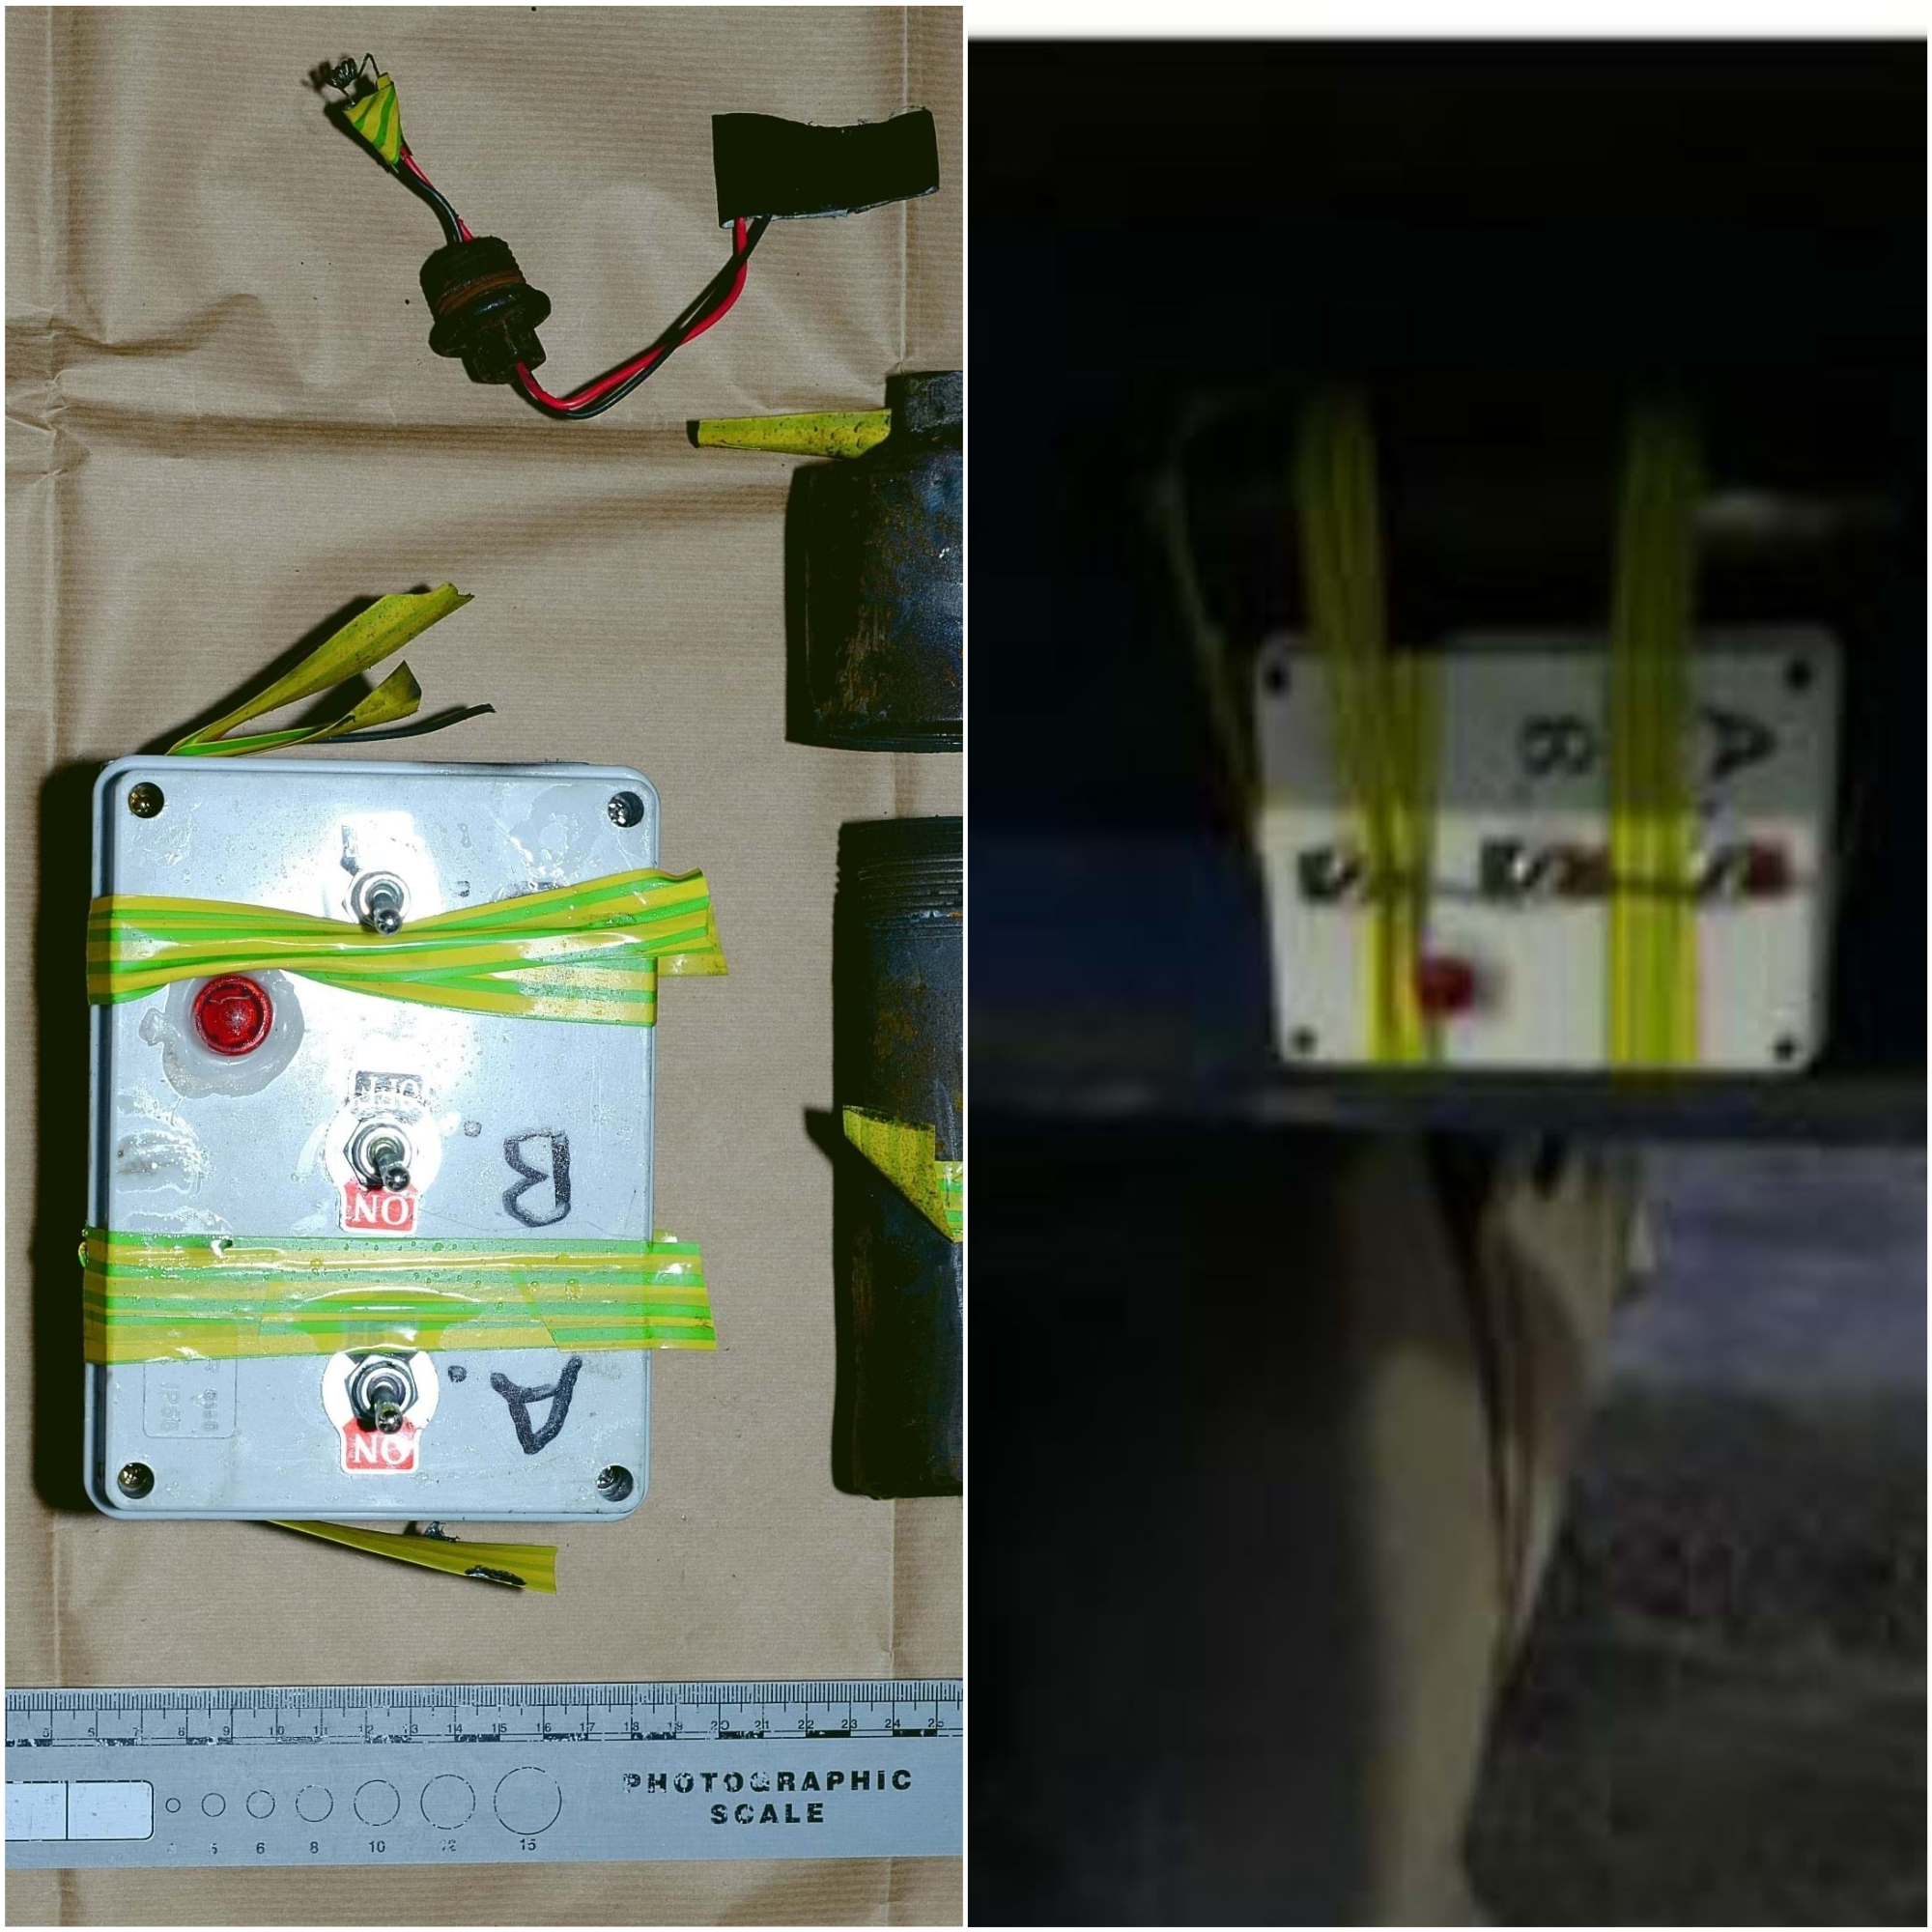 The device was found on a lorry